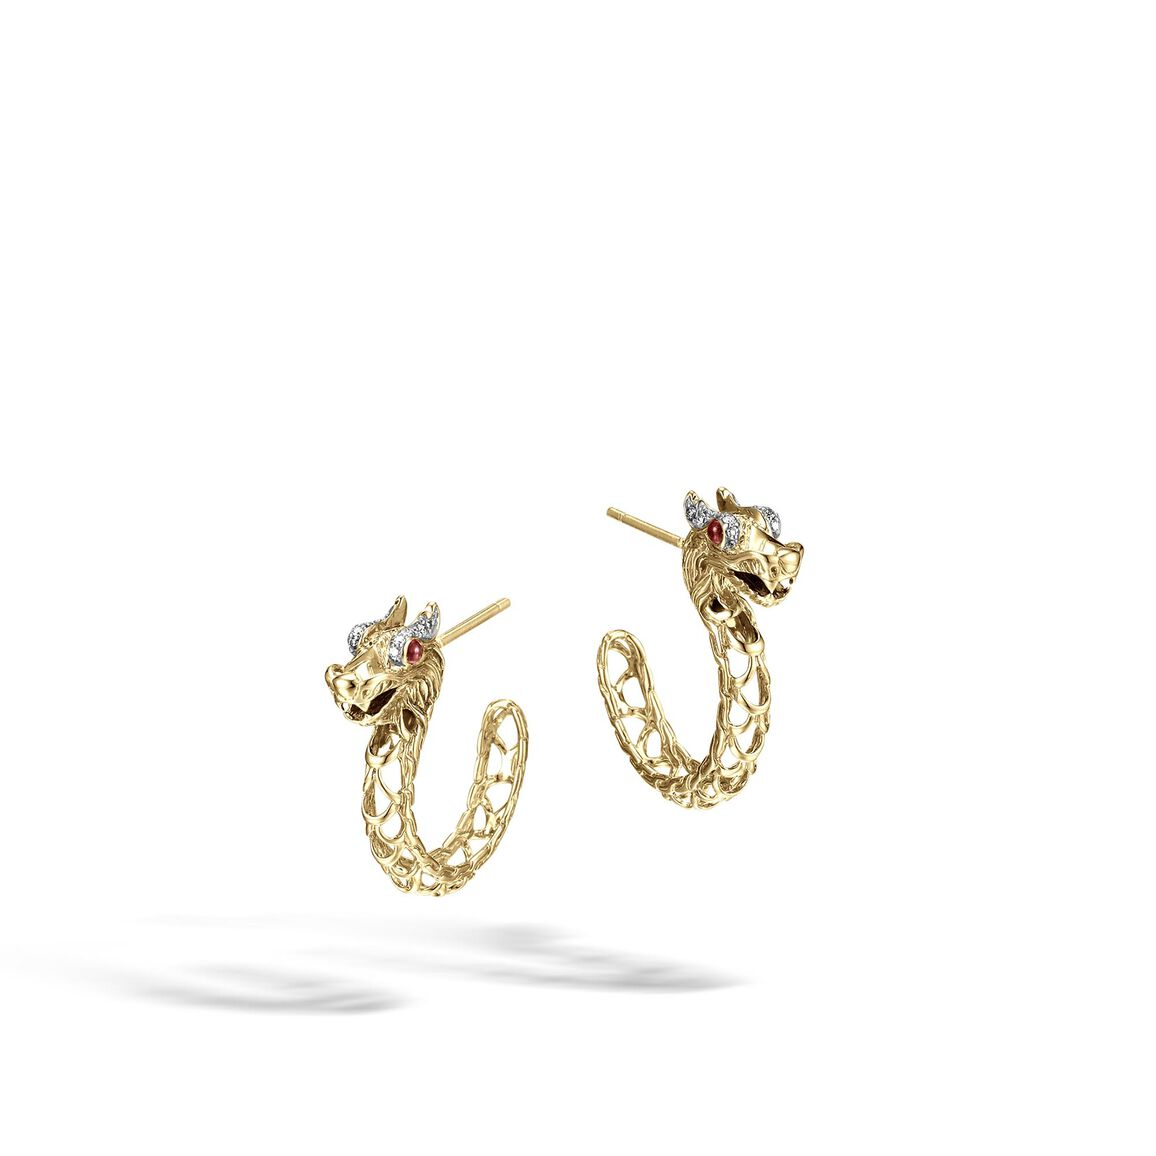 Legends Naga Small Hoop Earring in 18K Gold with Diamonds